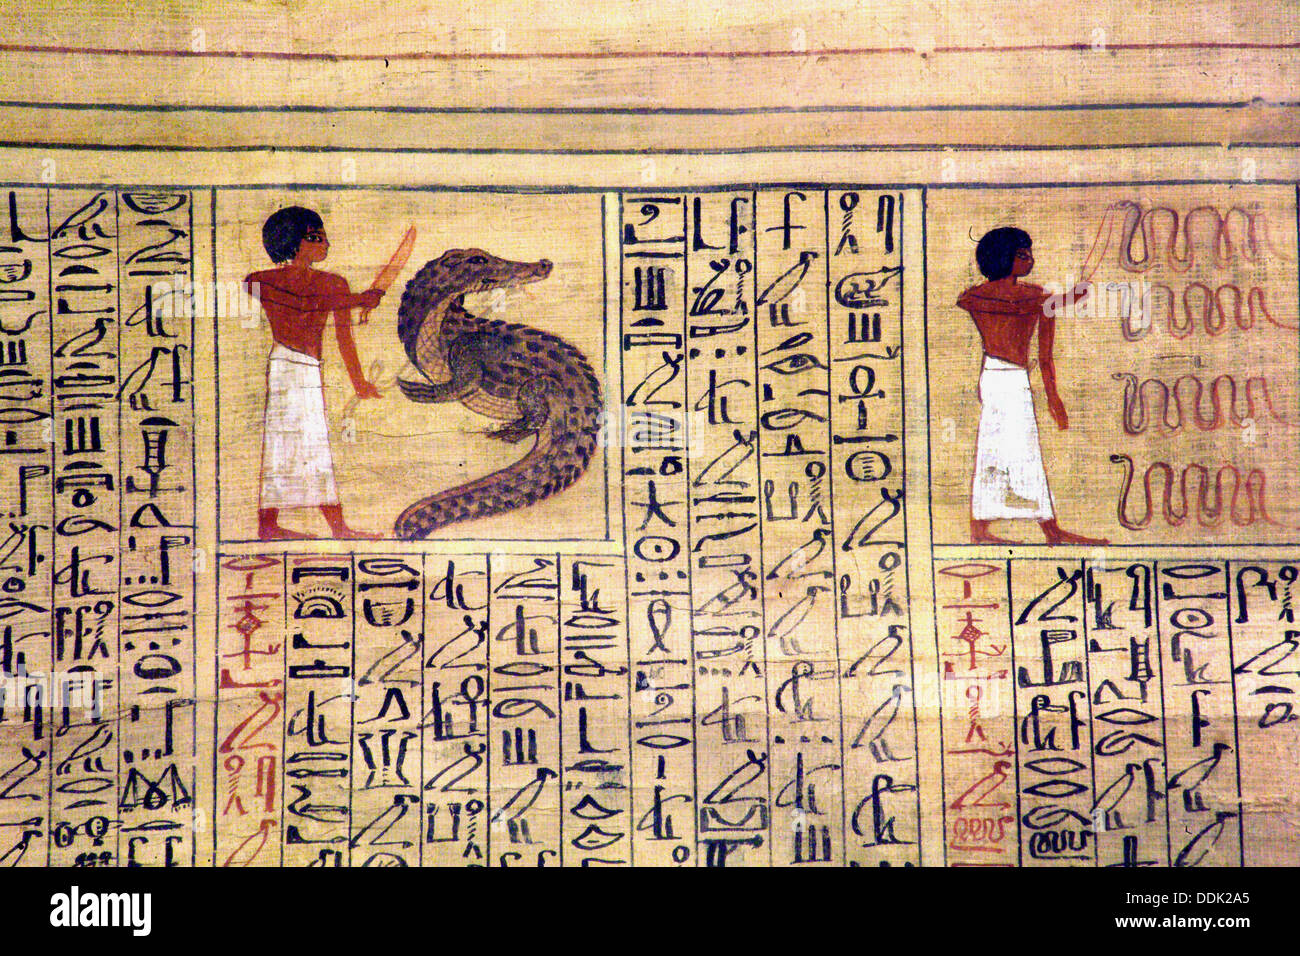 Detail of Book of Dead found in the Tomb of Kha and preserved at the Egyptian Museum of Torino. Italy - Stock Image